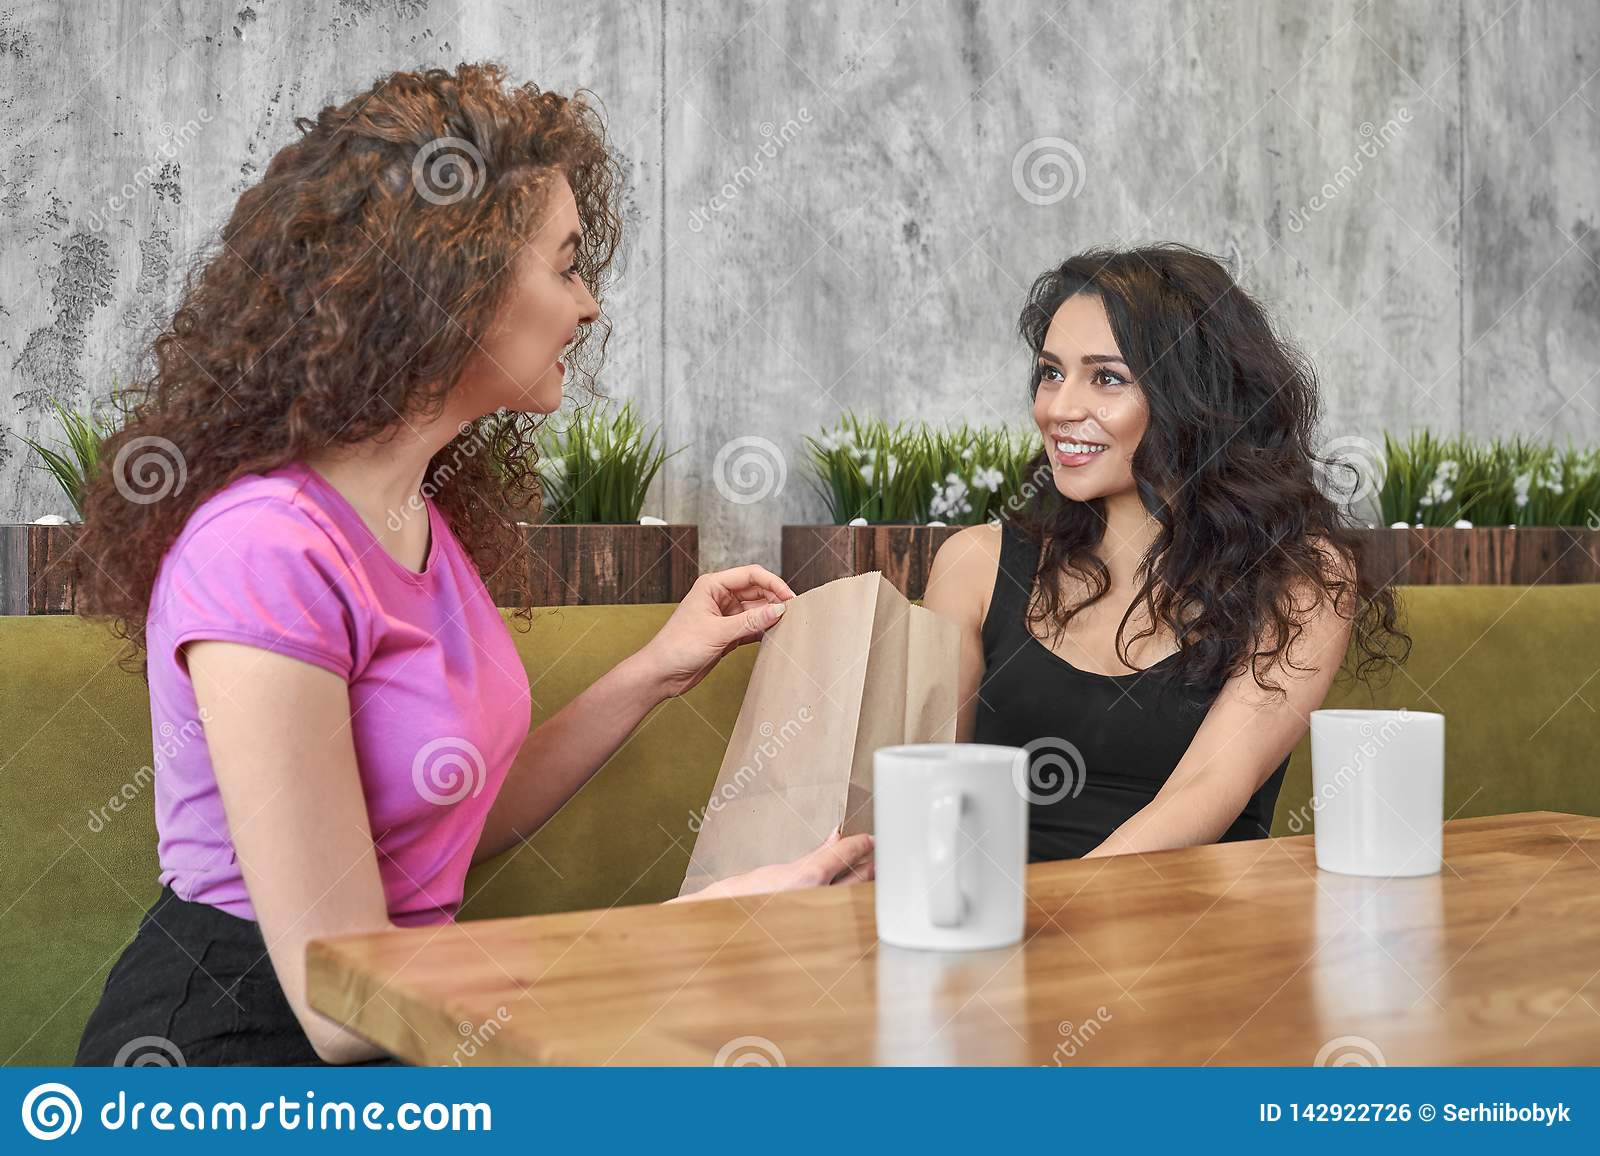 Two girls sitting in cafe, giving present.